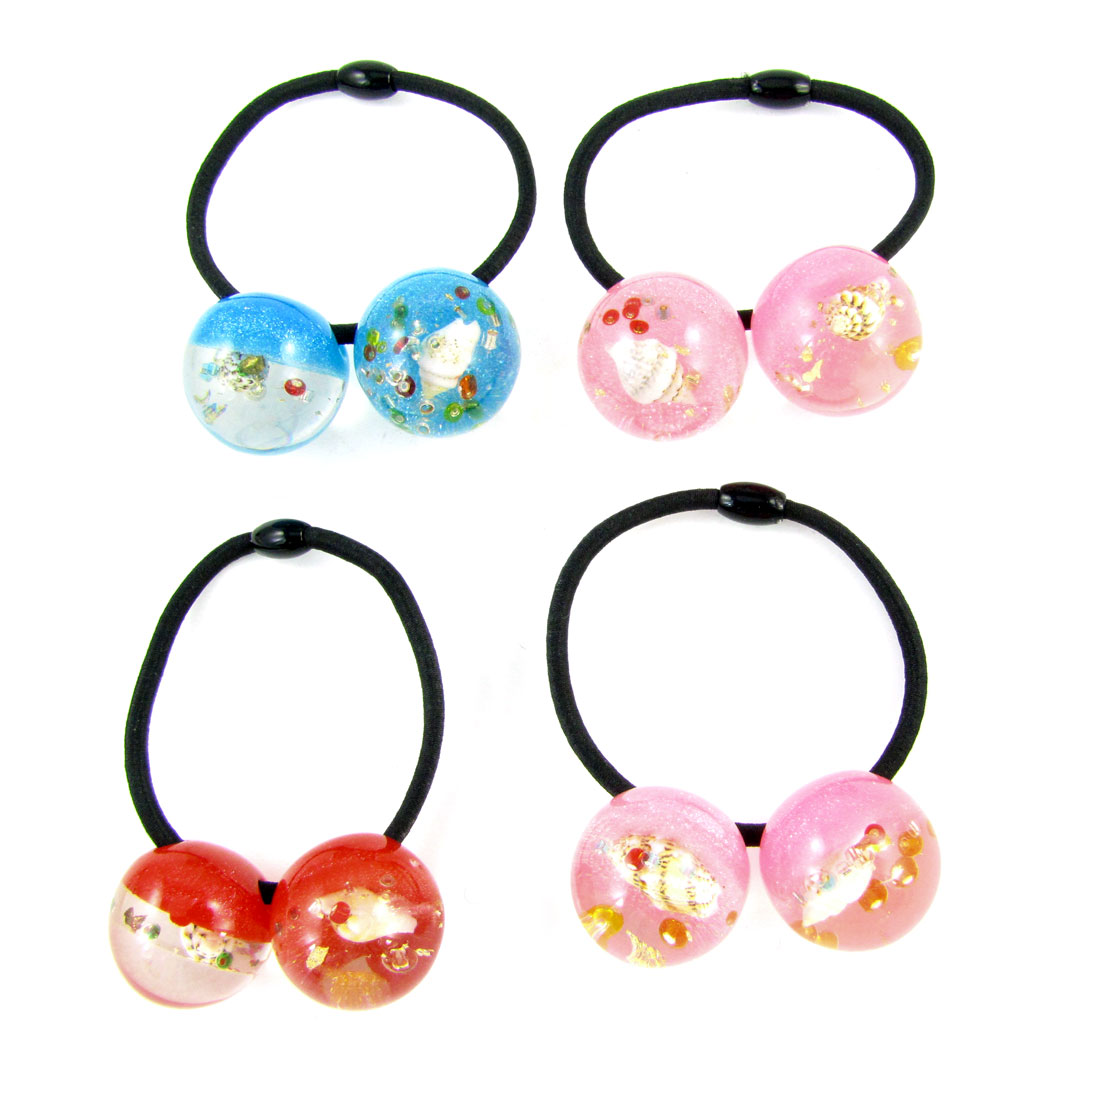 4pcs Shell Inlaid Assorted Color Beads Decor Elastic Hair Band Tie for Women